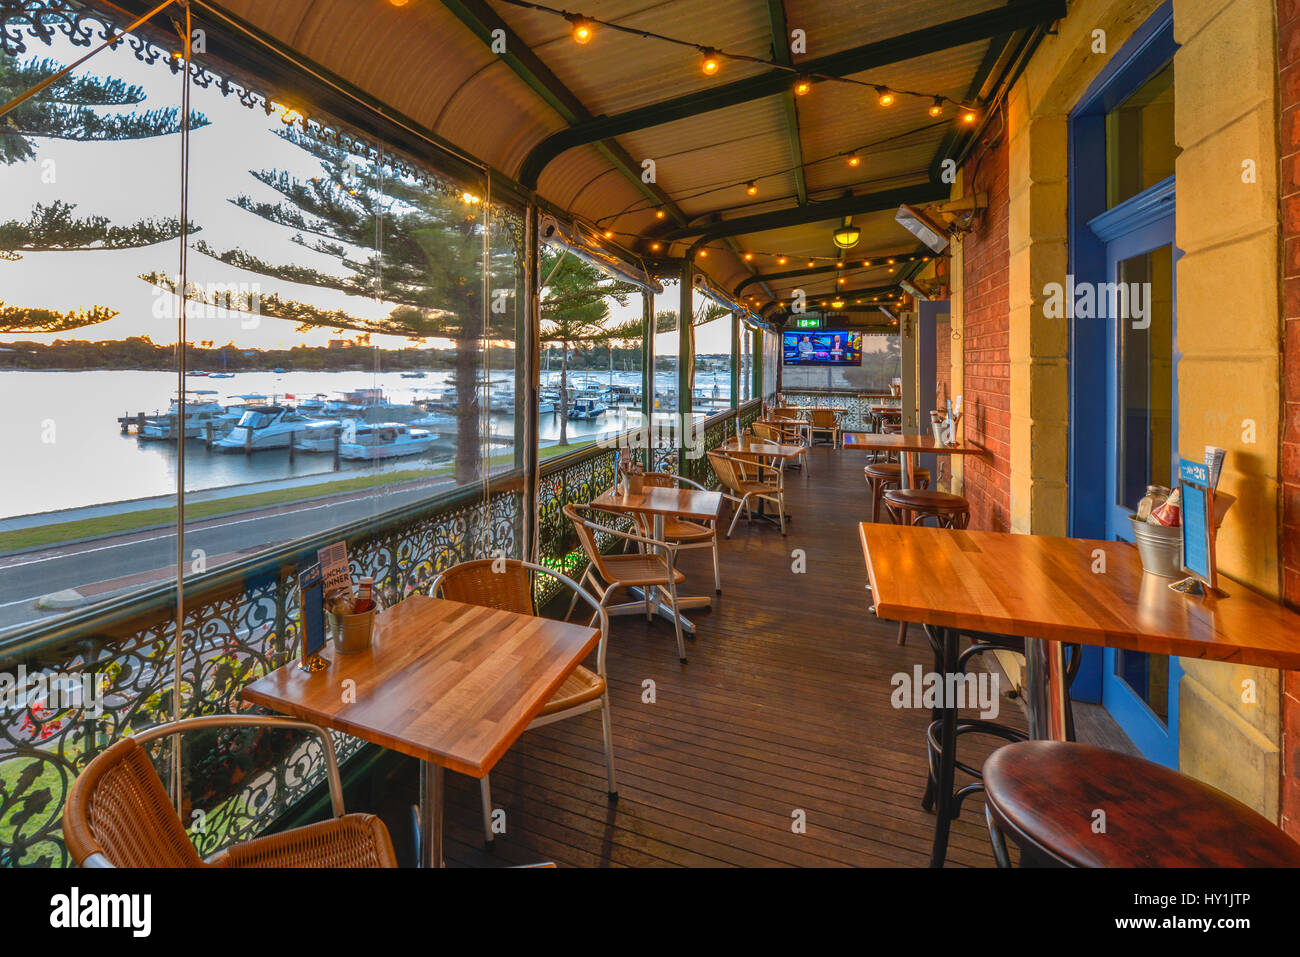 View from the balcony of a typical turn of the century pub, overlooking a marina on the Swan River, Fremantle, Perth, Stock Photo